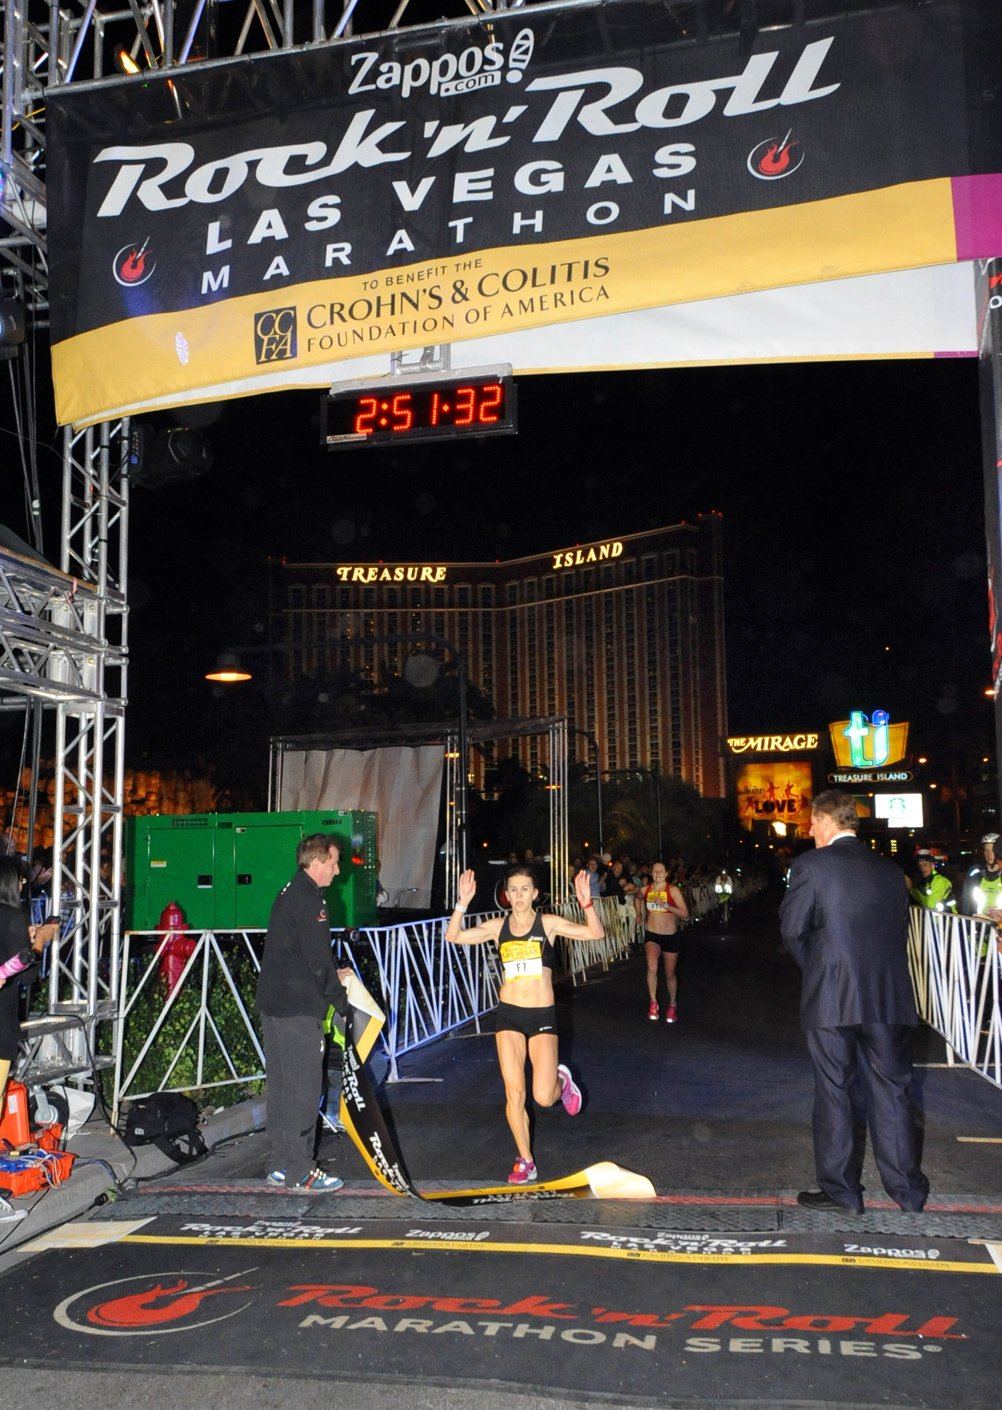 Nuta Olaru of Romania is the women's champion in the marathon with a time of 2:51:31 (Courtesy: LVCVA)